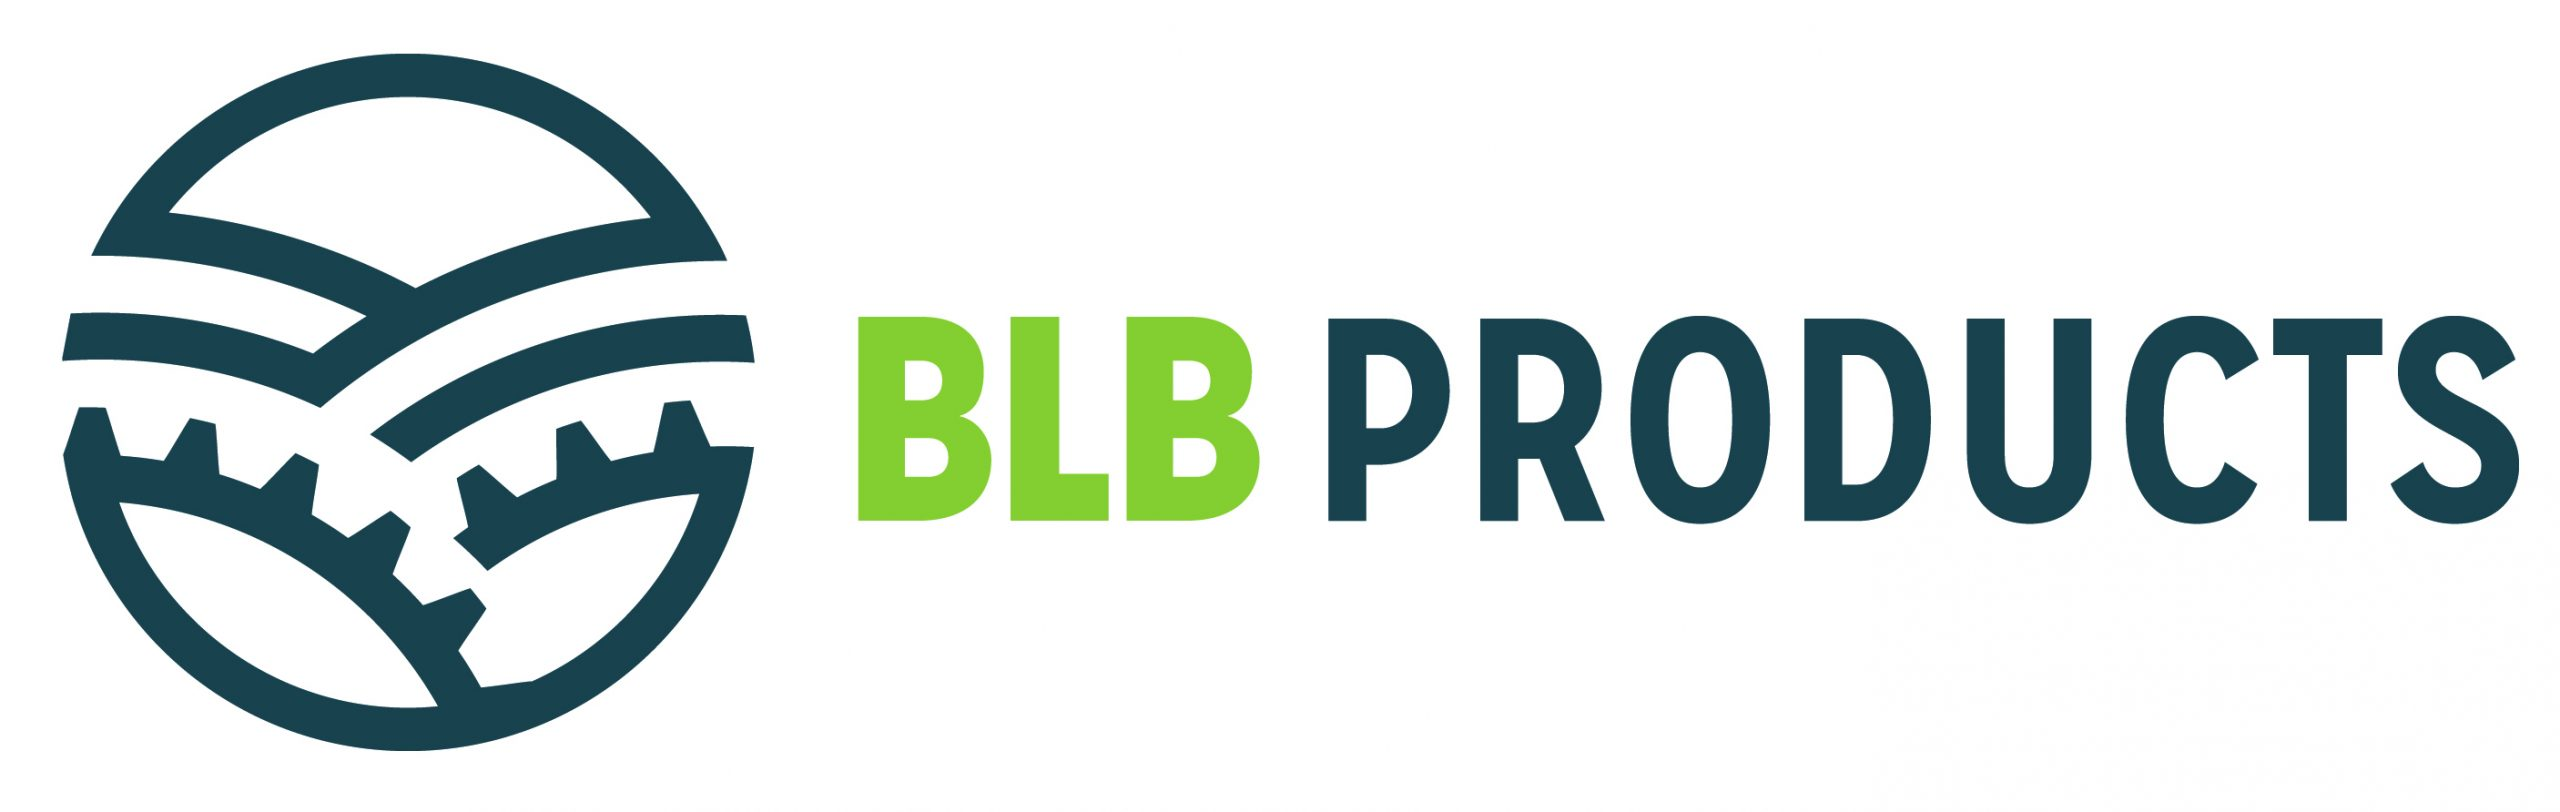 BLB Products